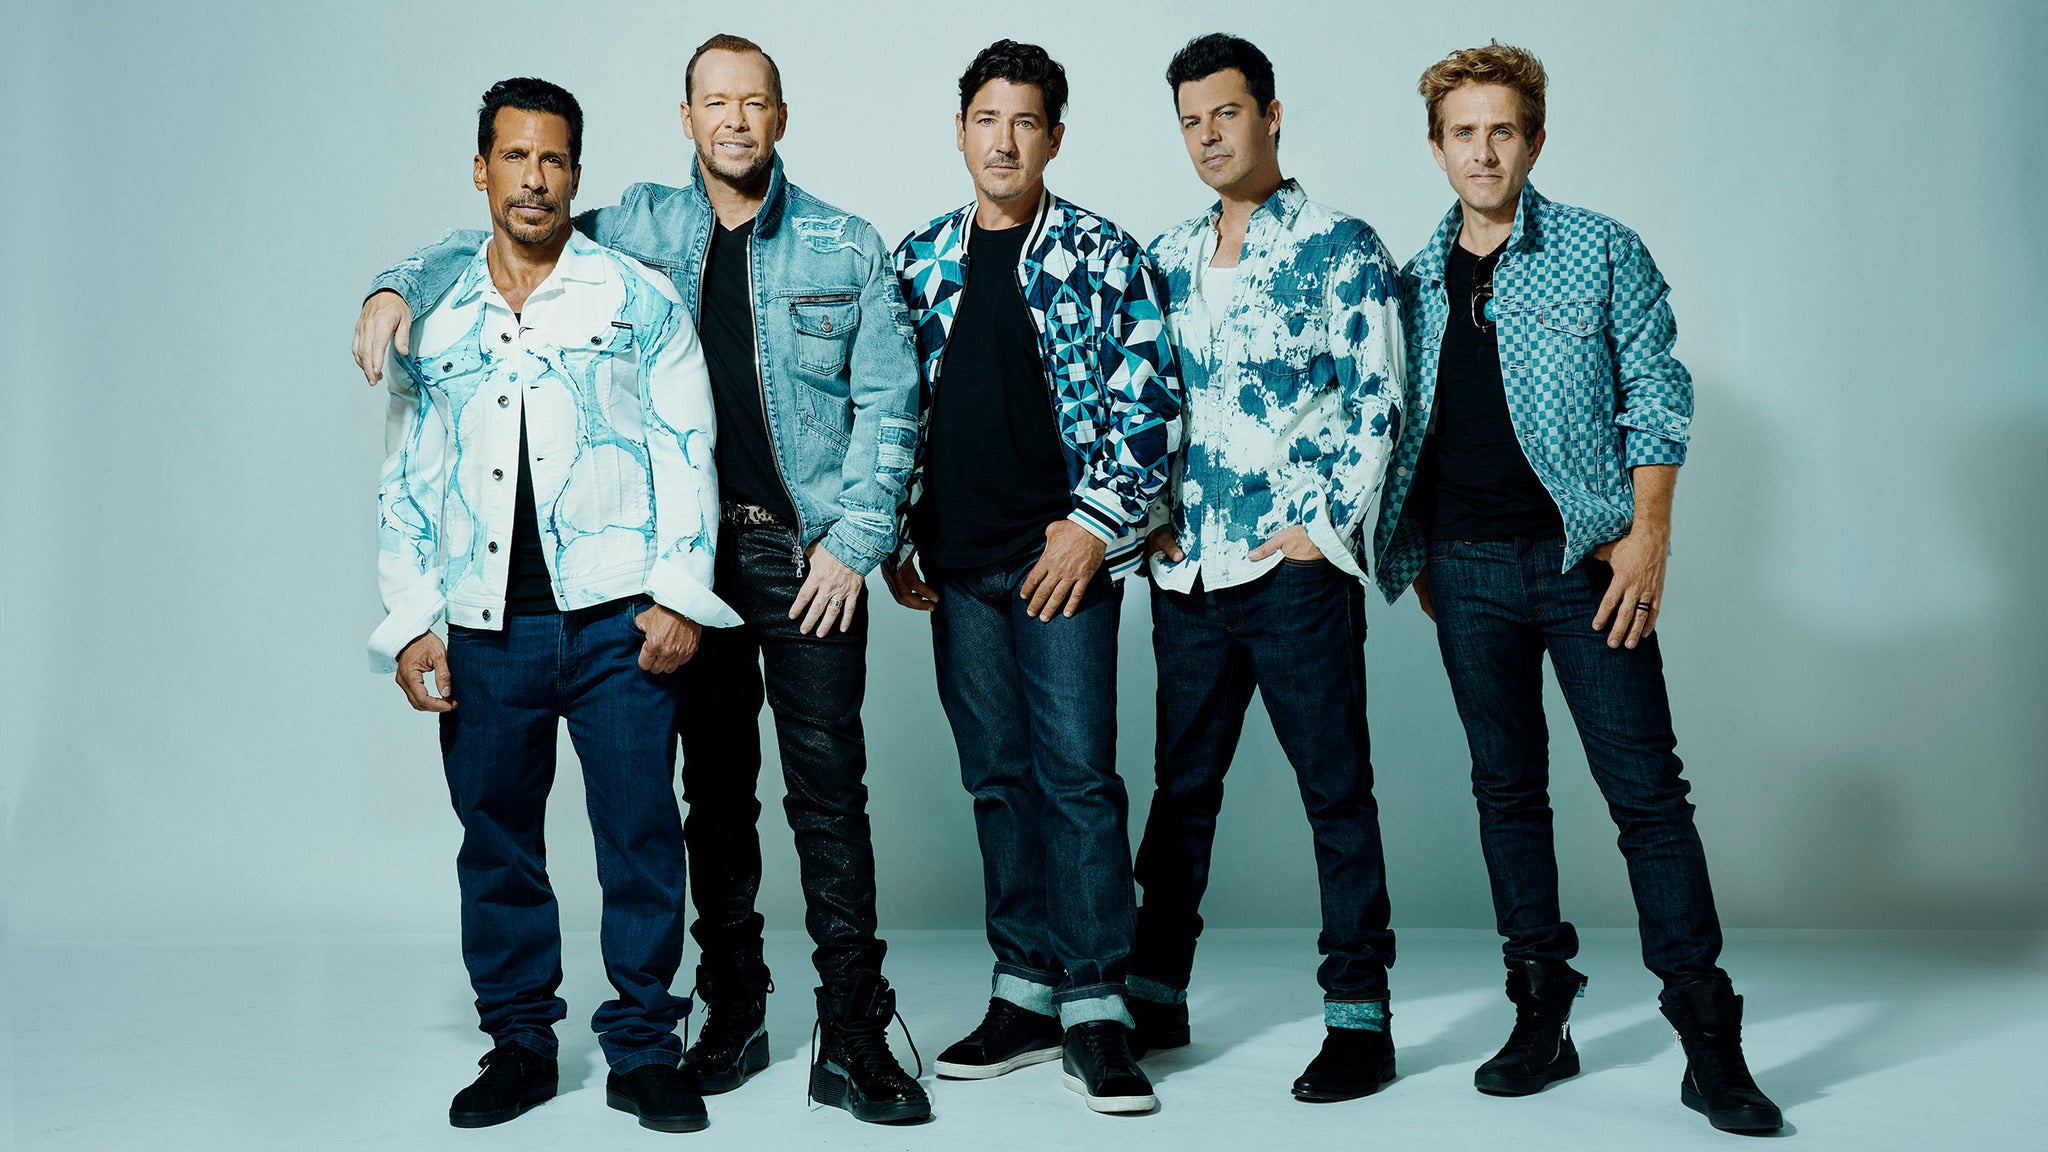 presale code for New Kids On The Block: The Mixtape Tour 2022 tickets in Toronto - ON (Scotiabank Arena)